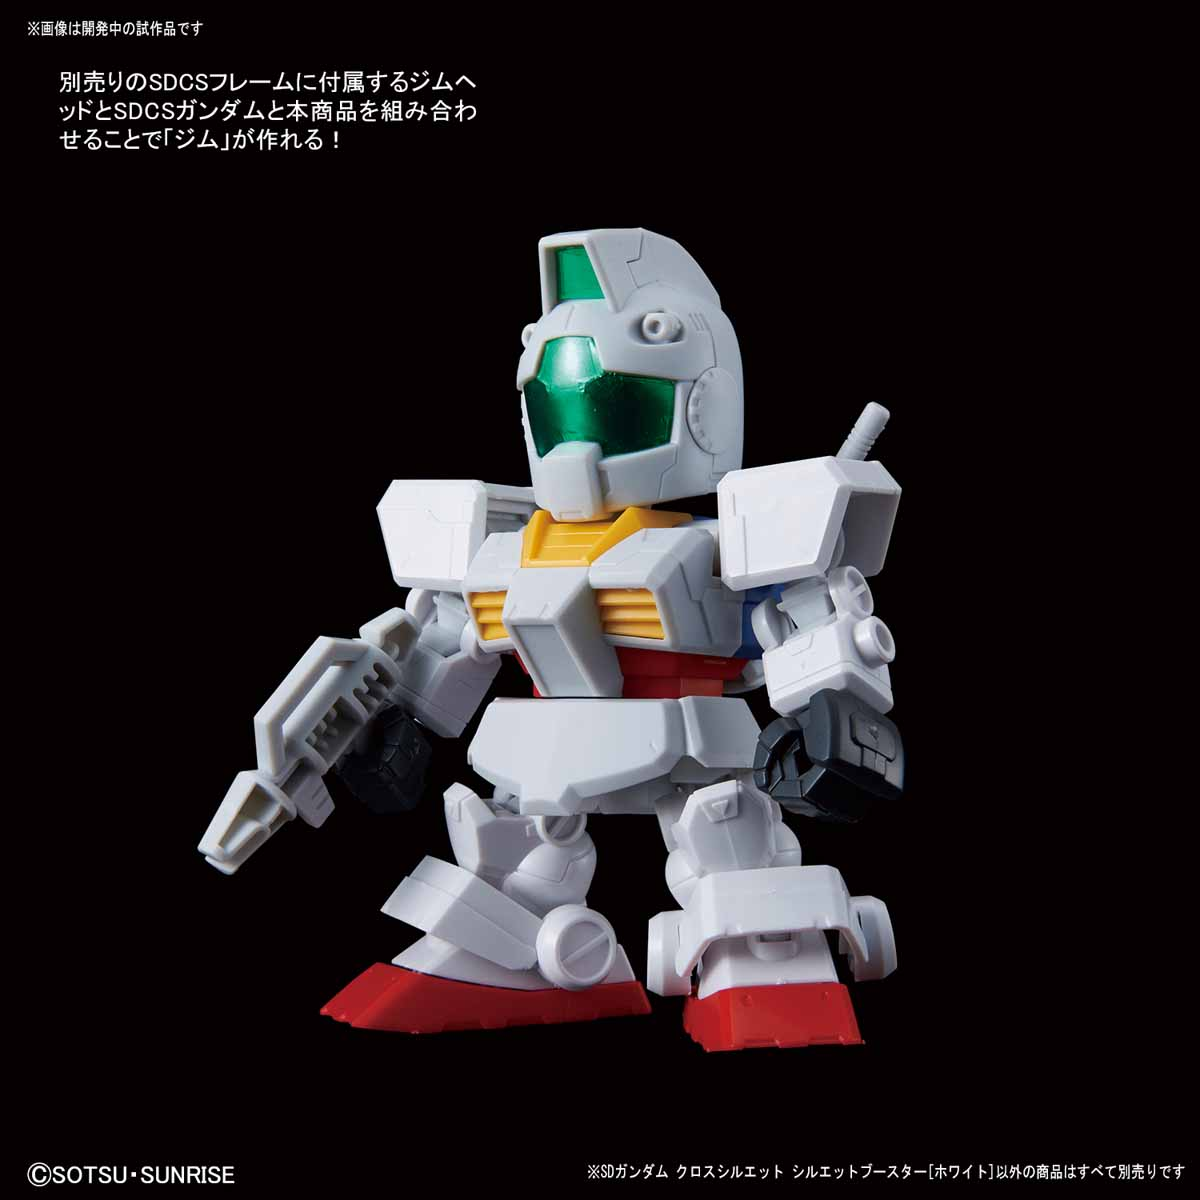 sdcs-silhouette-booster-white (5)